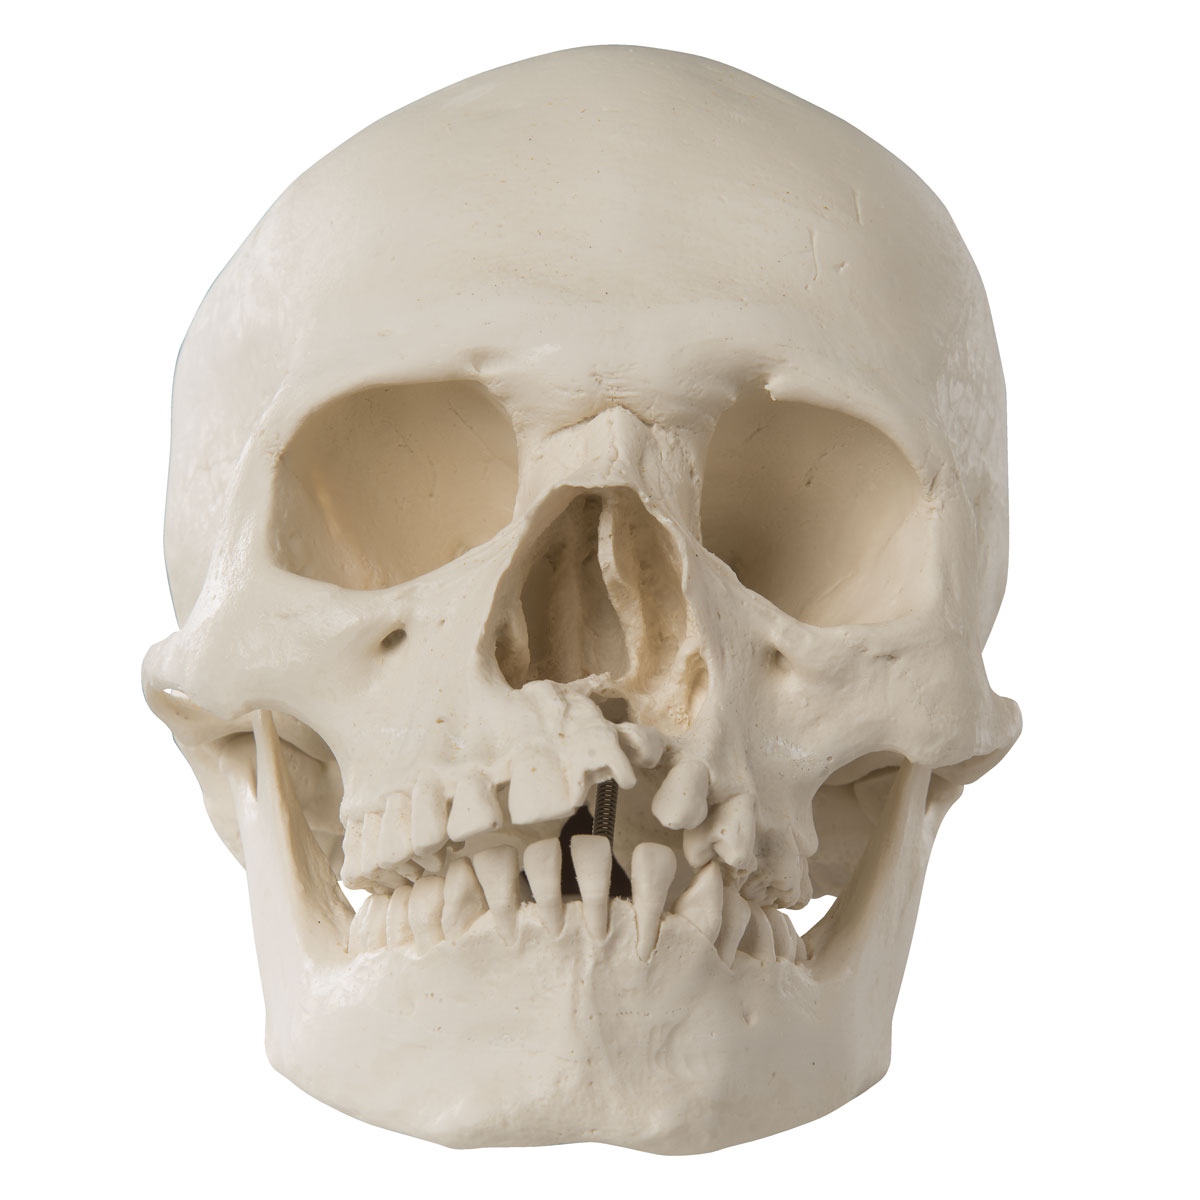 Plastic Skull Model Human Skull With Cleft Palate And